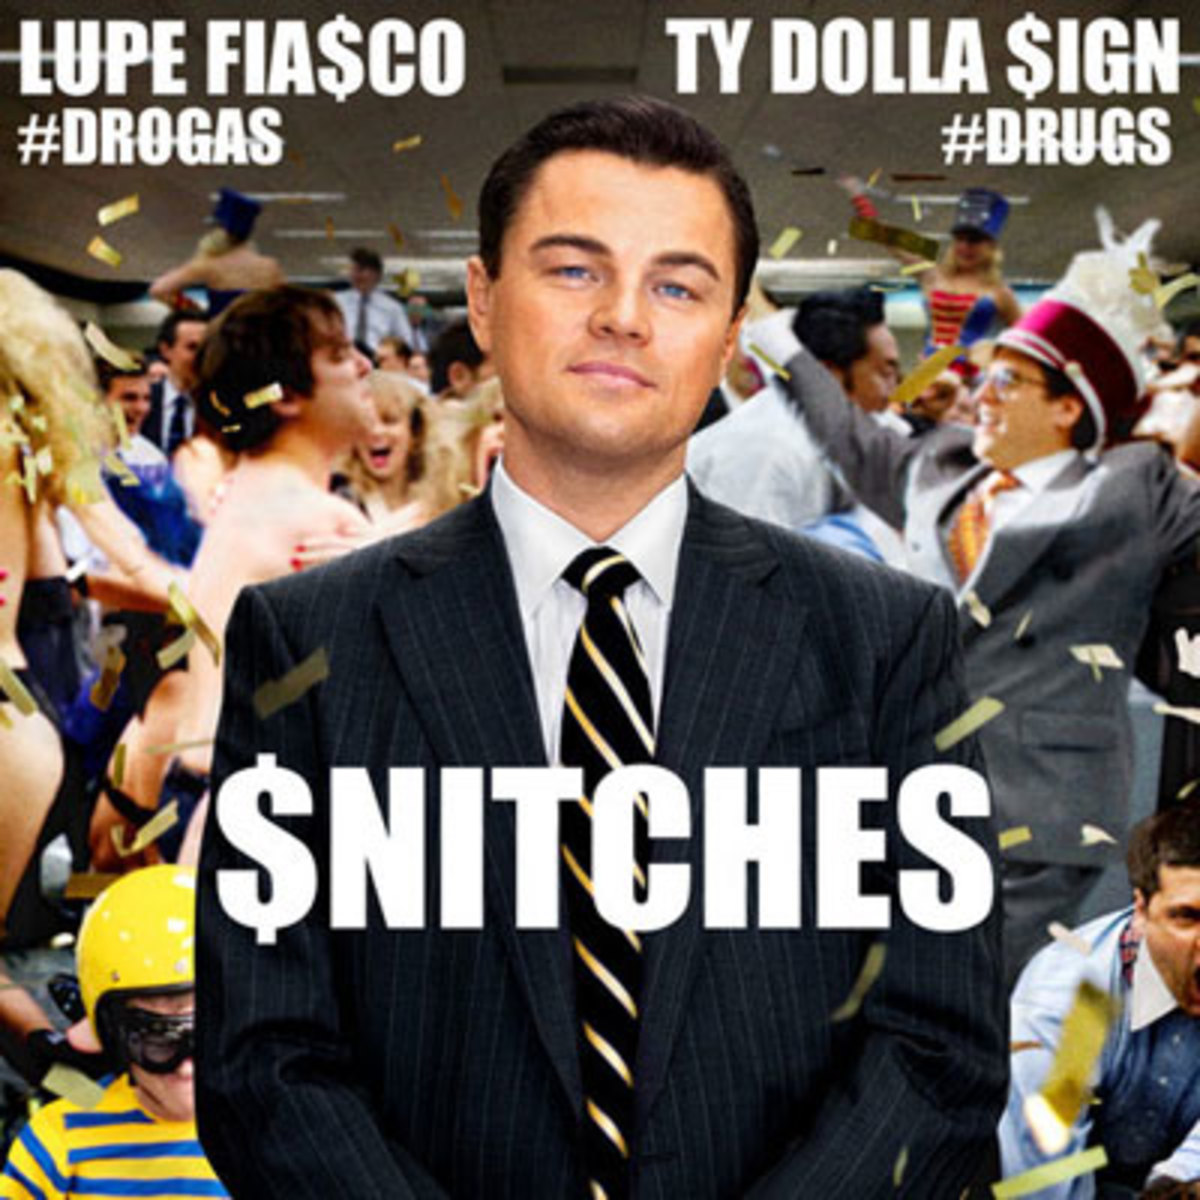 lupefiasco-snitches.jpg